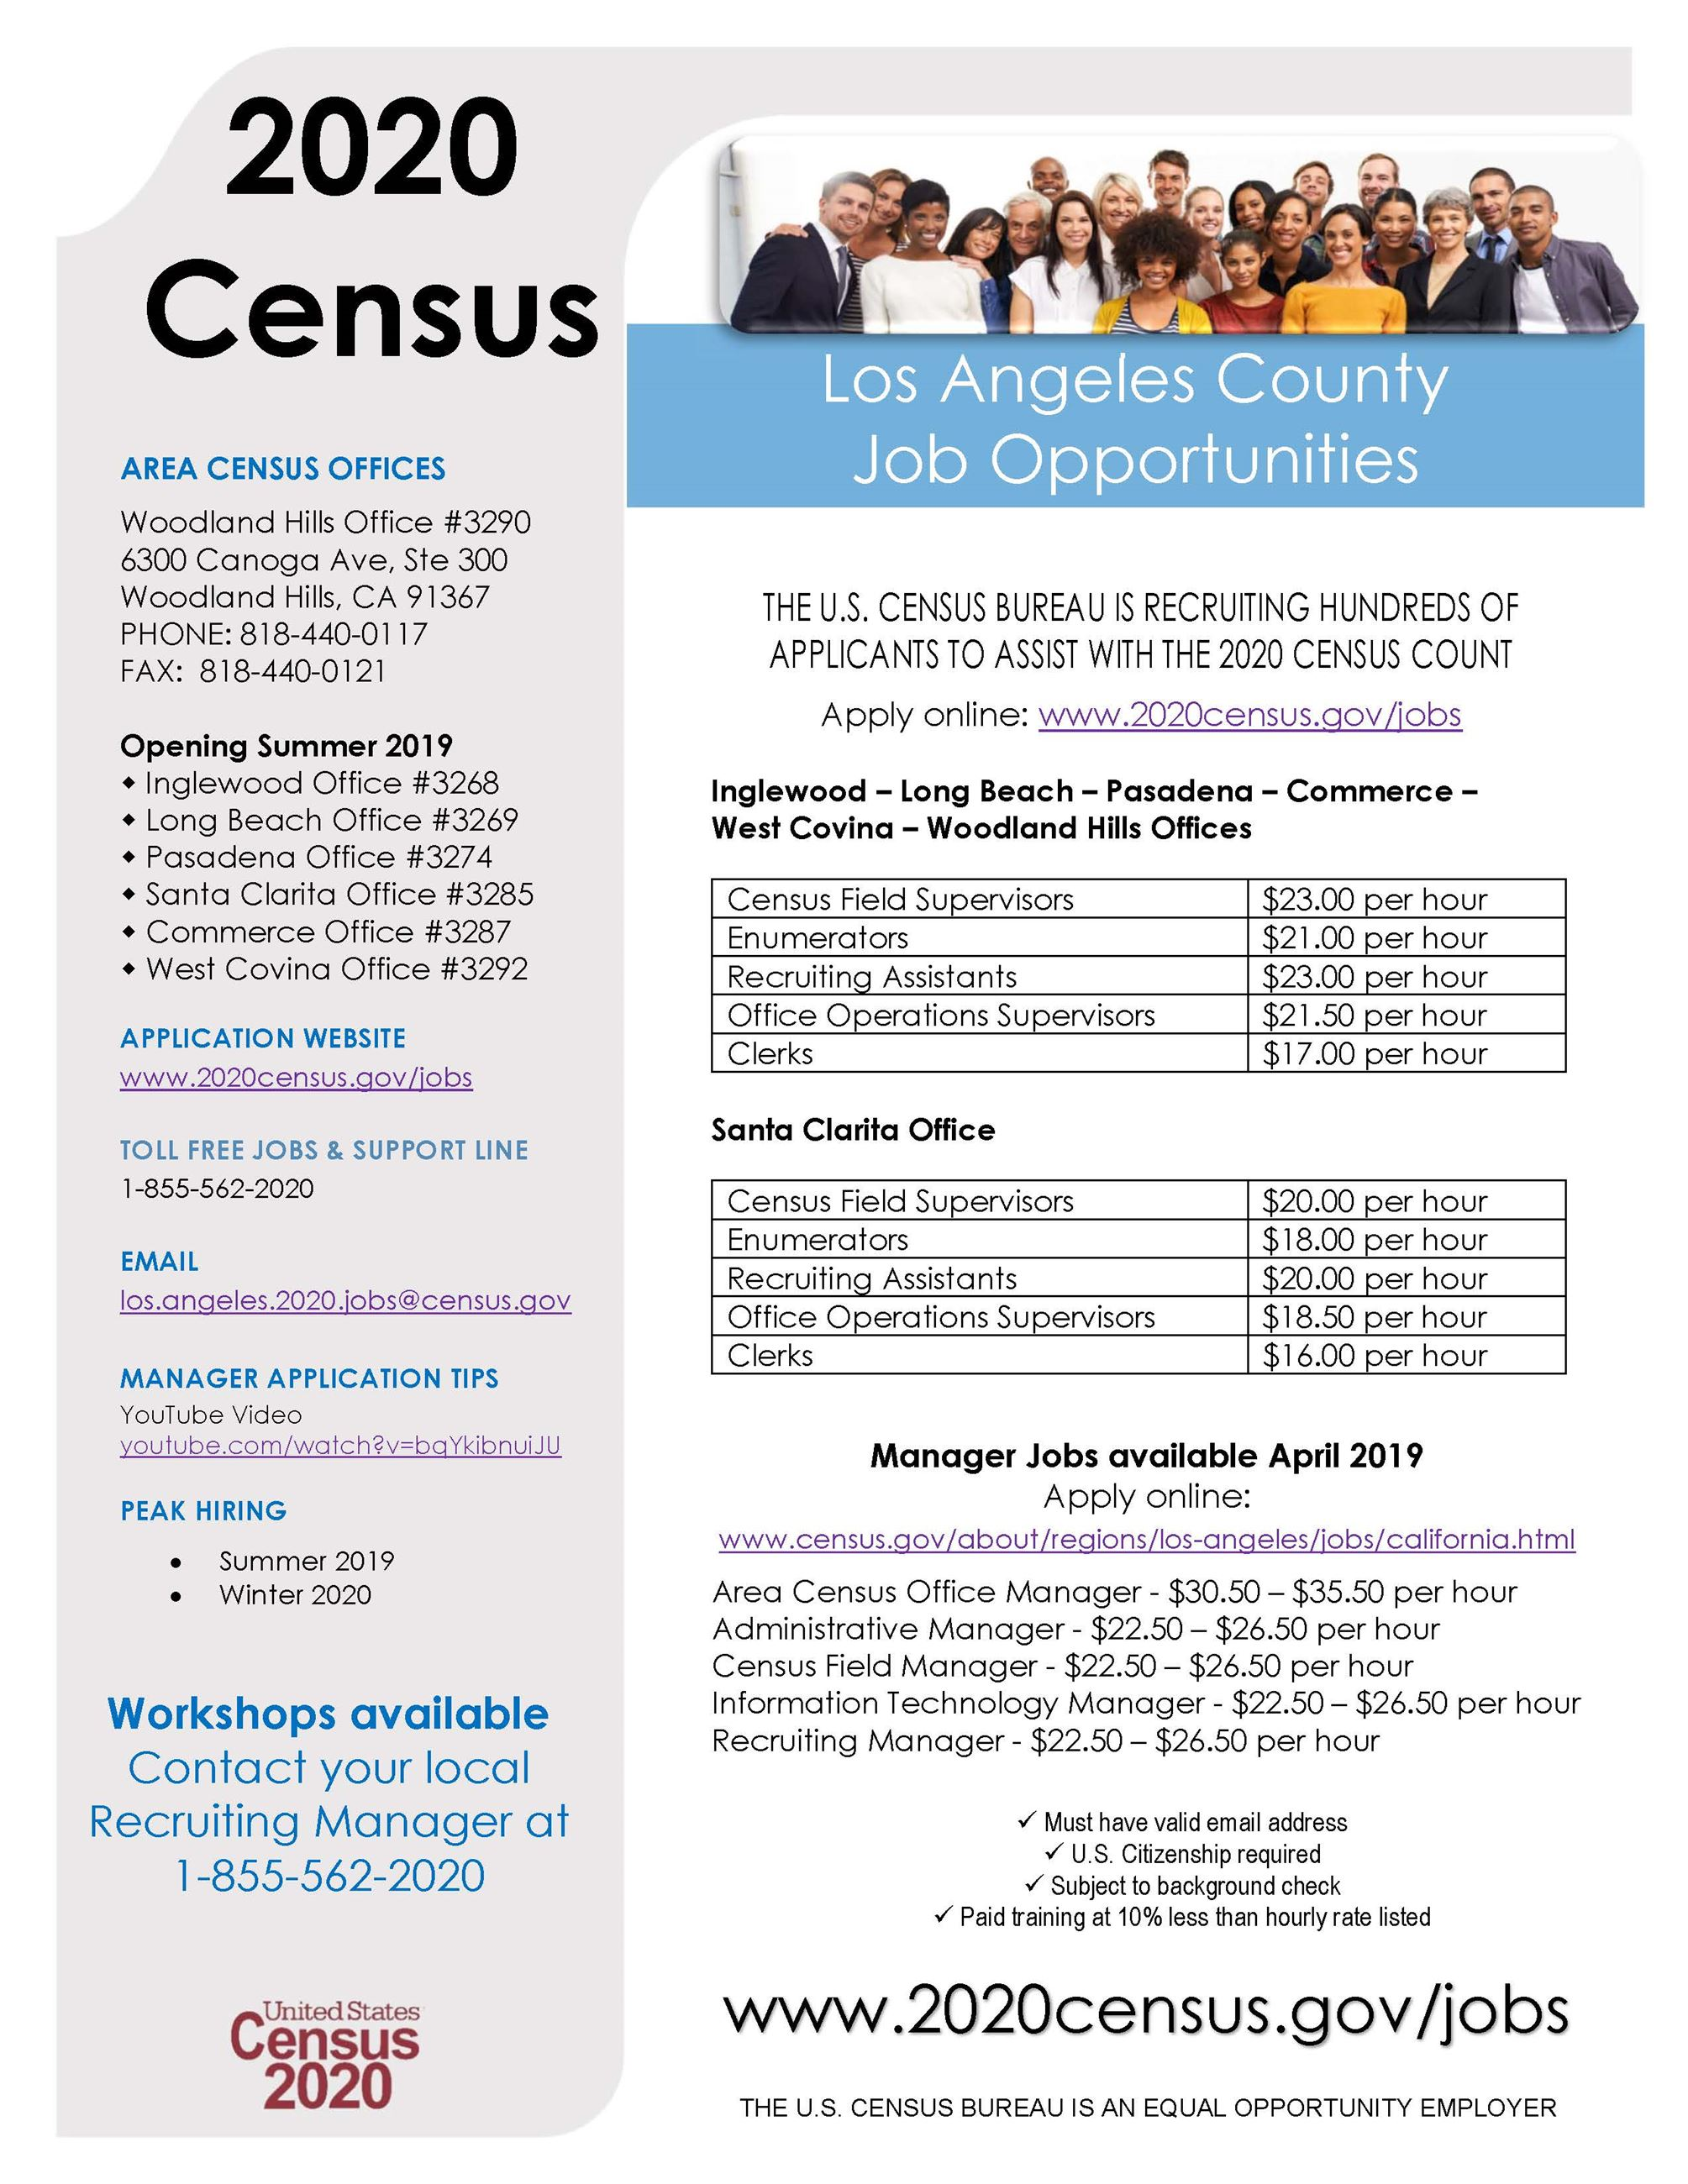 LA County Census Jobs